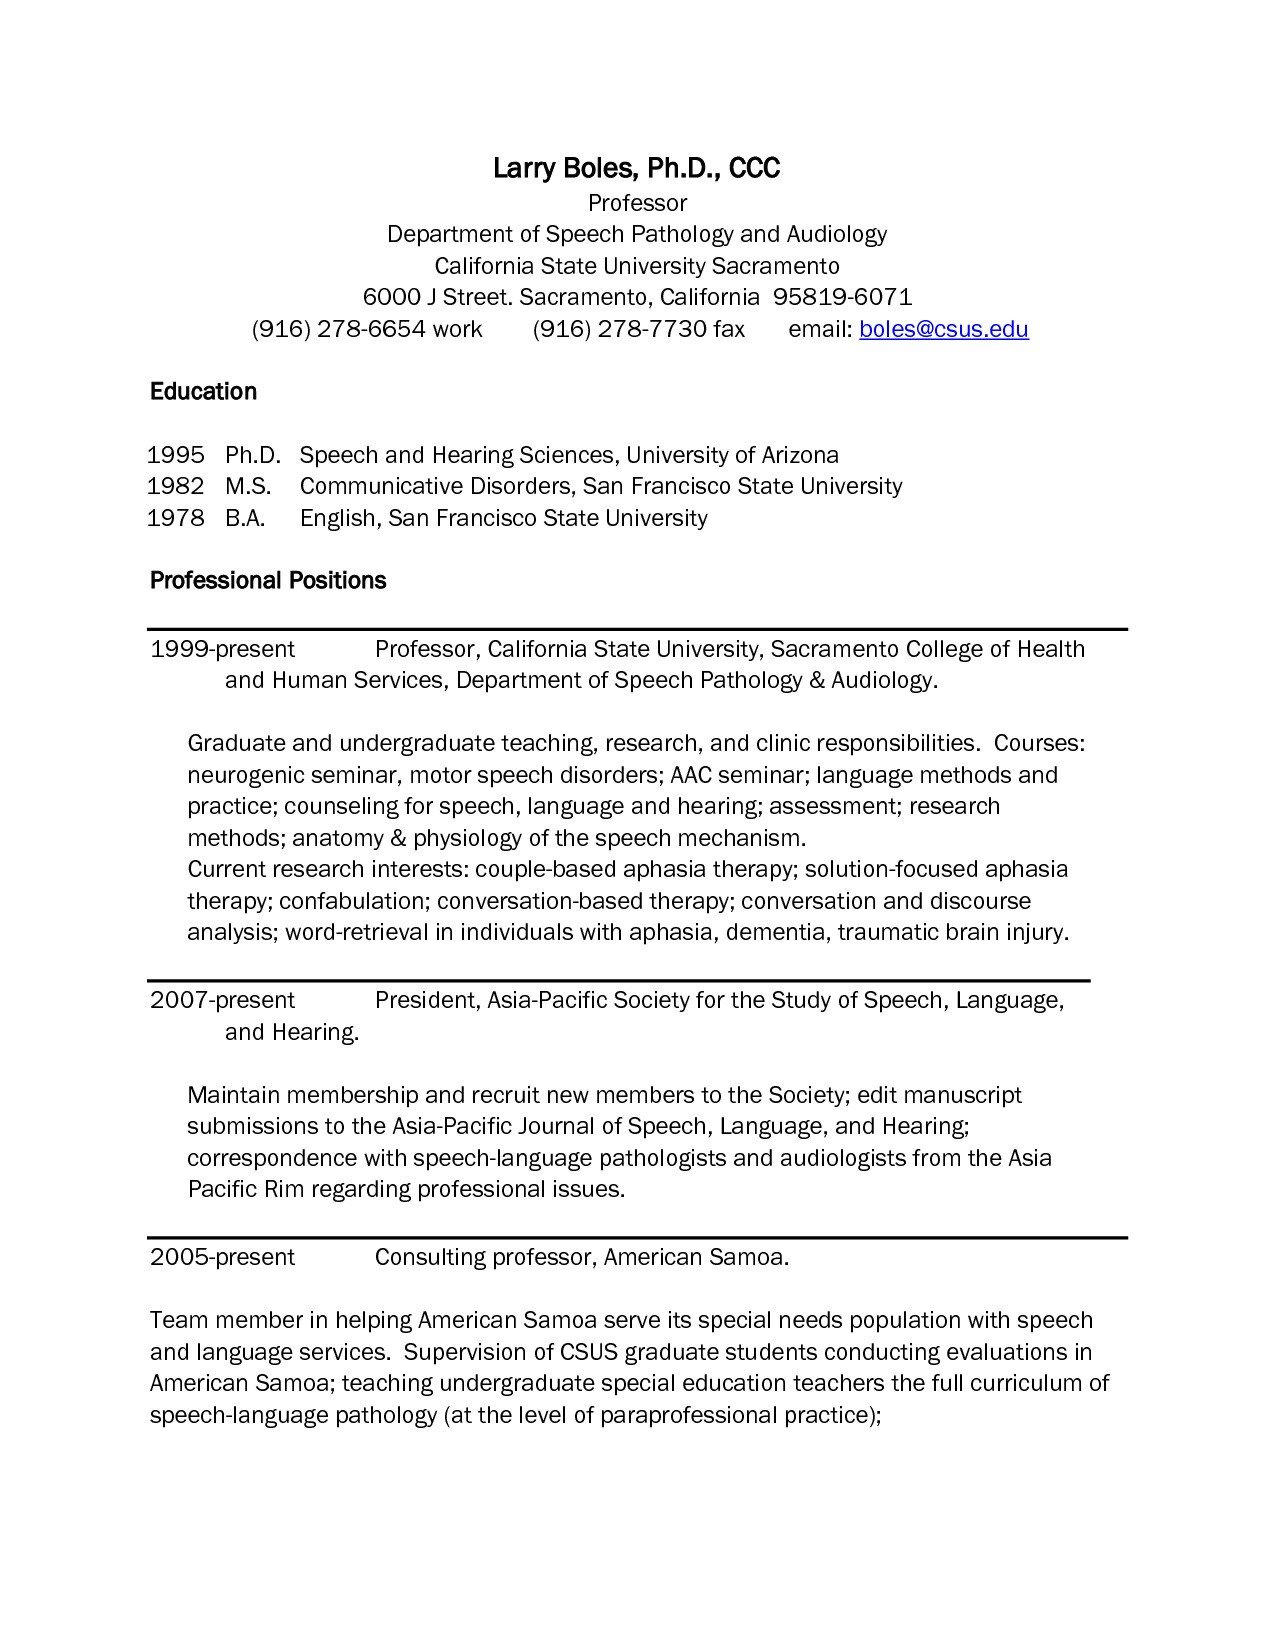 Speech Language Pathologist Resume Template